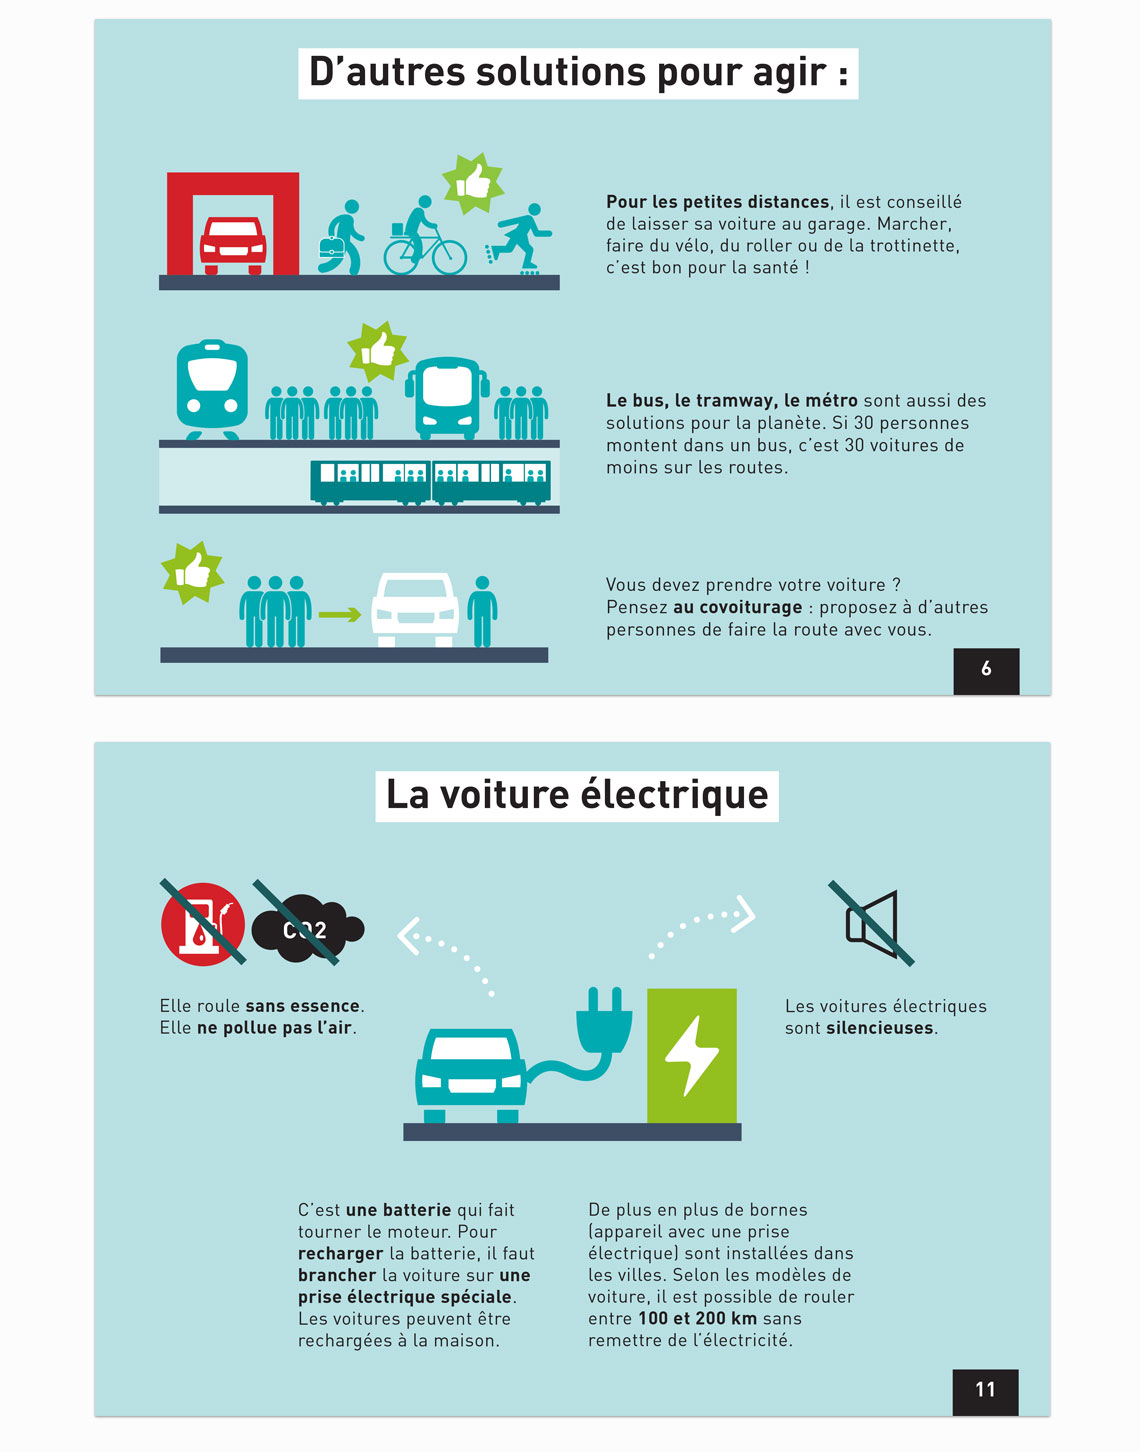 Guide in French for all® on the subject of transports and climate change